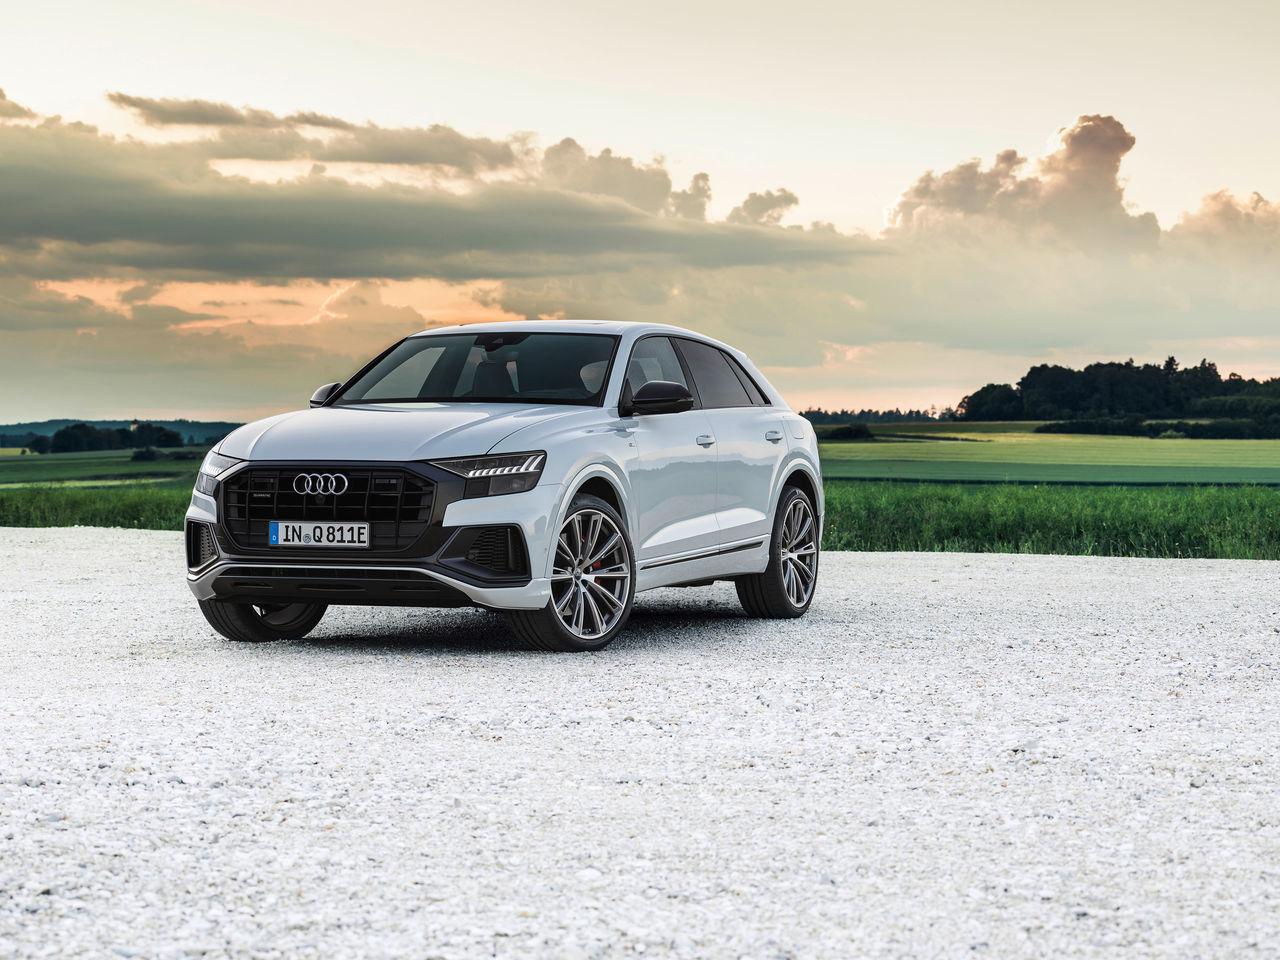 Plug-in hybrid rounds off Q8 product line: The Audi Q8 TFSI e quattro